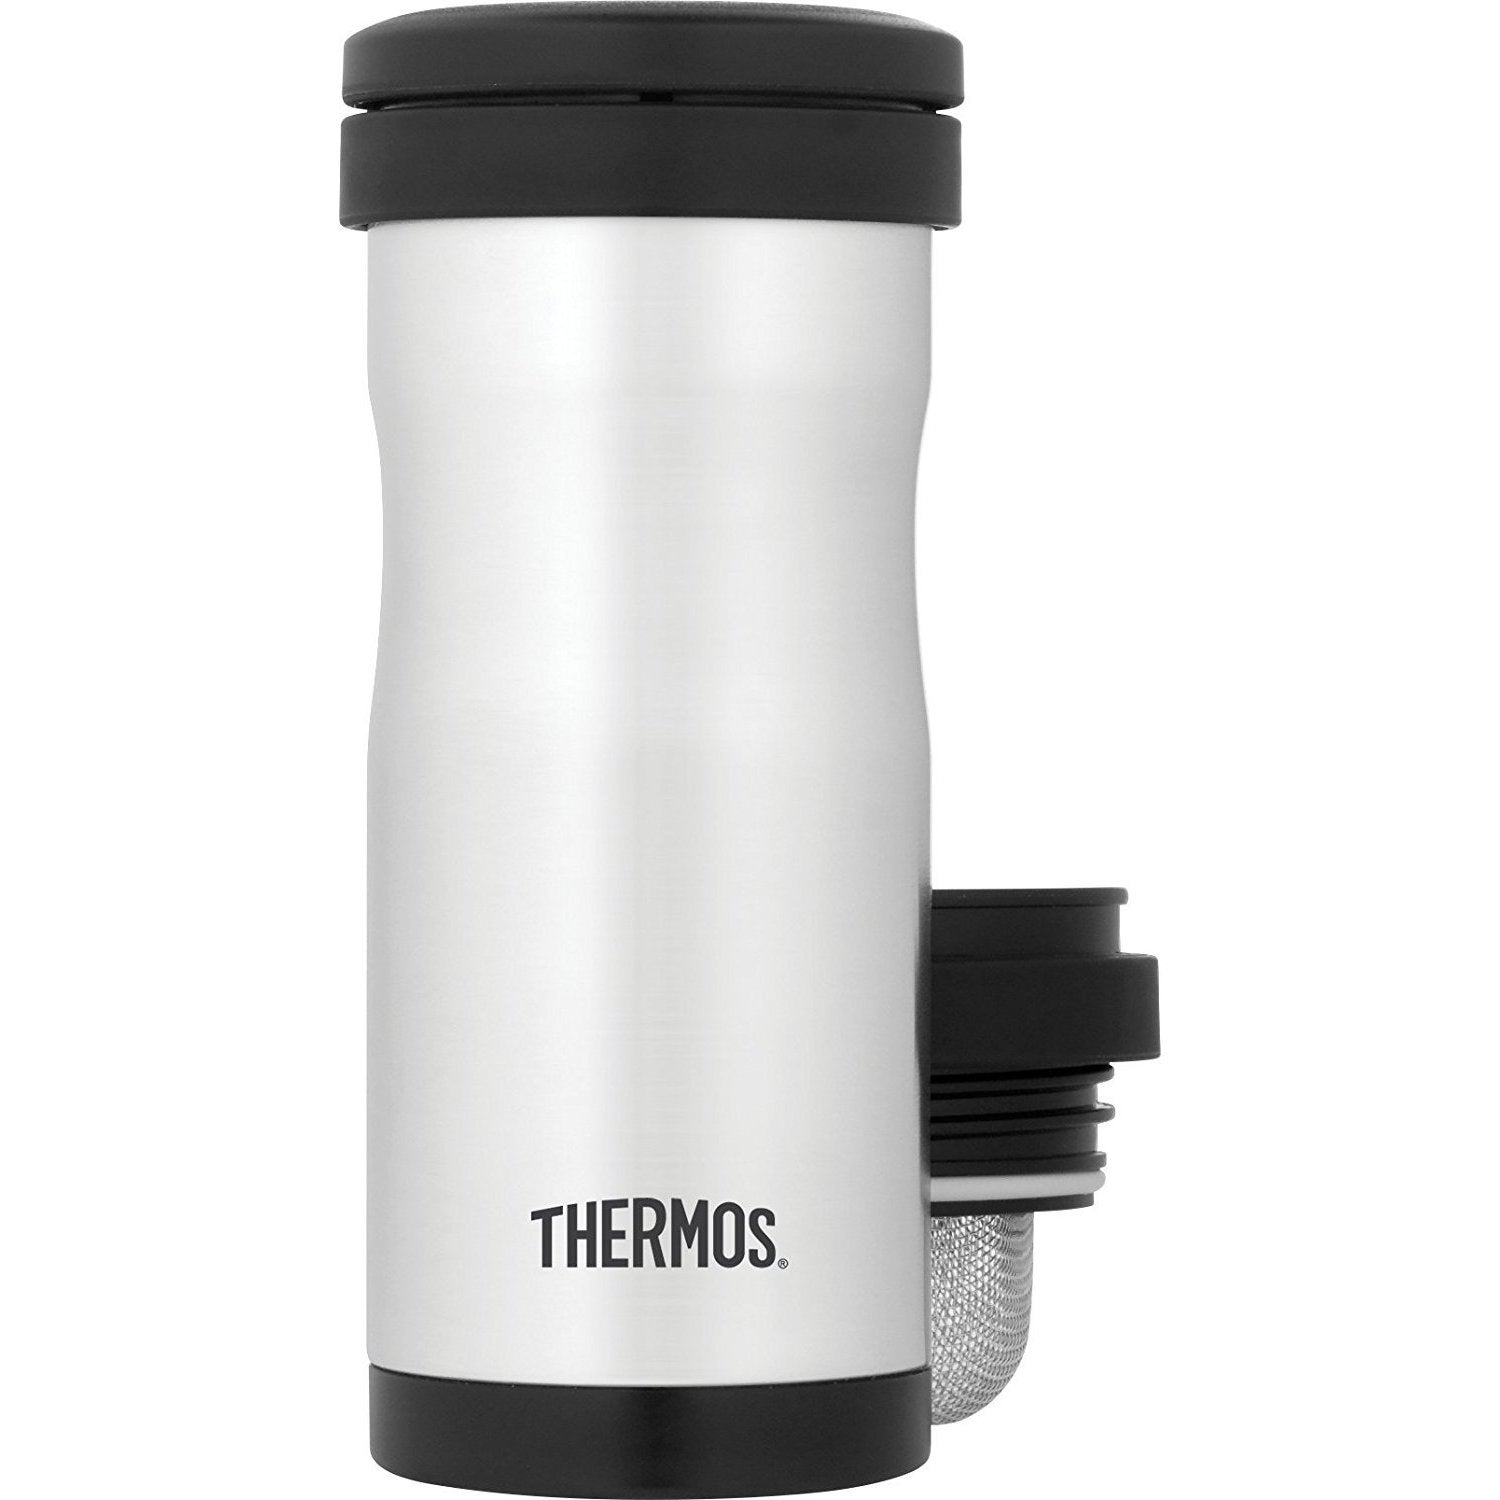 Thermos 12 Oz Vacuum Insulated Tea Tumbler w/ Infuser, St...